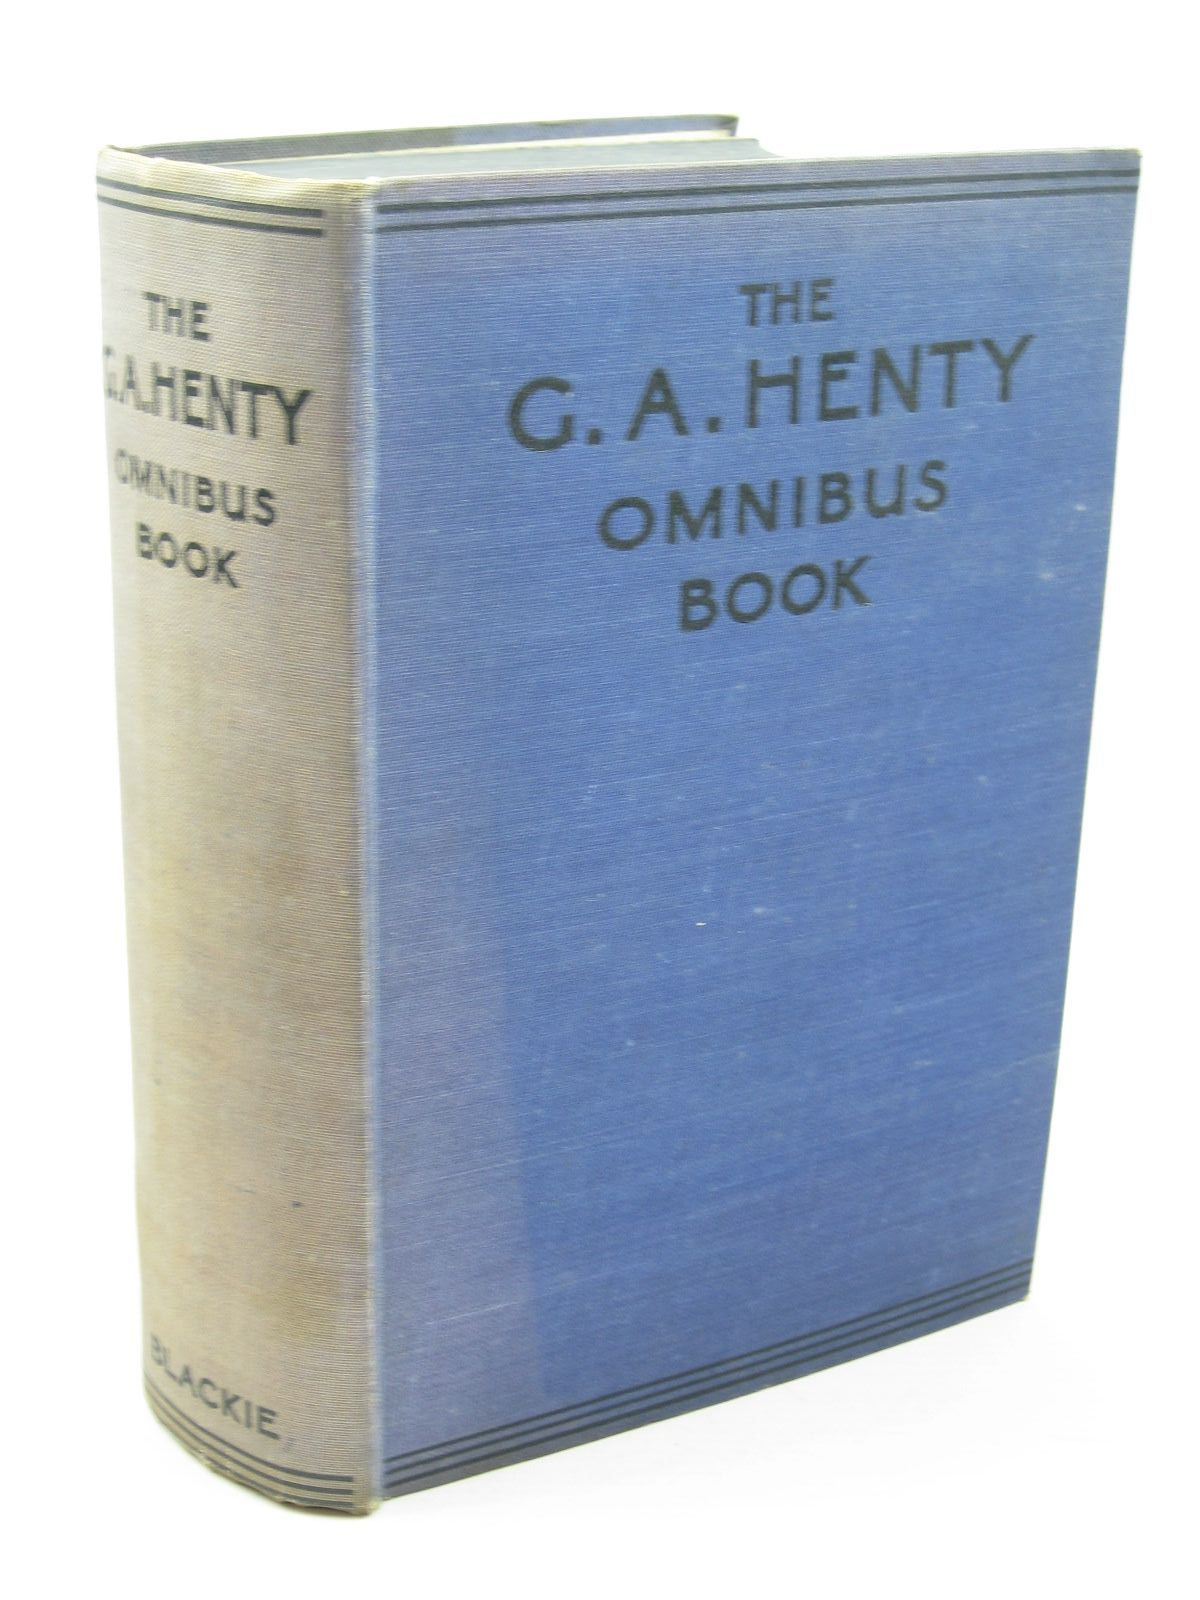 Photo of THE G.A. HENTY OMNIBUS BOOK written by Henty, G.A. published by Blackie & Son Ltd. (STOCK CODE: 1312053)  for sale by Stella & Rose's Books